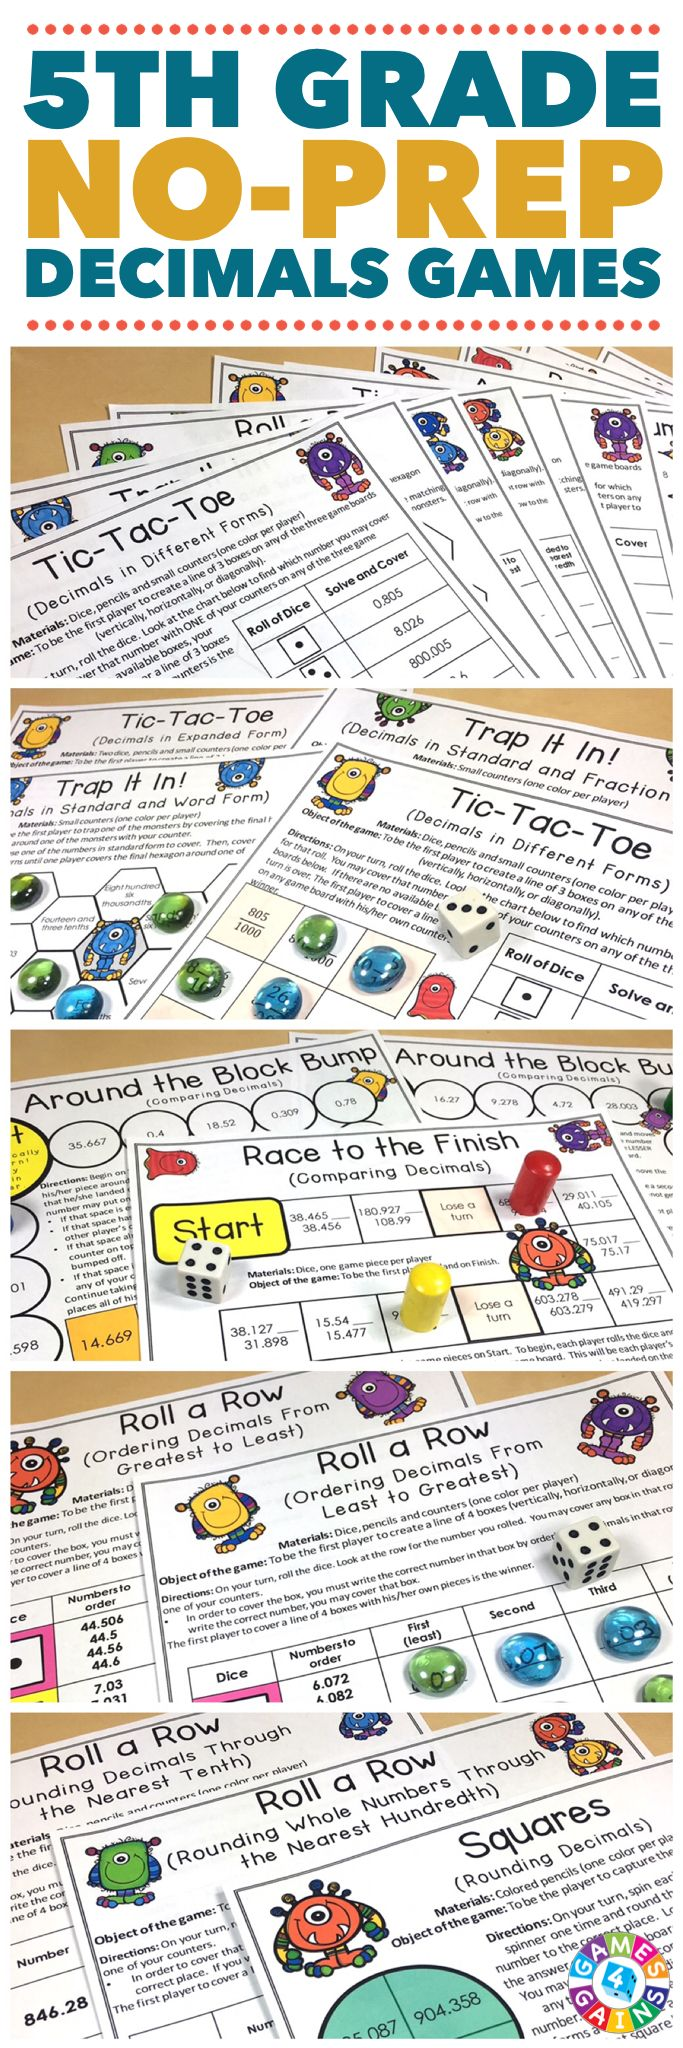 """My students loved these activities! Great way to practice and reinforce decimal skills!"" Decimals Games for 5th Grade contains 13 fun and engaging printable board games to help students to practice reading, comparing, ordering, and rounding decimals standards. These games are so simple to use and require very minimal prep. They are perfect to use in math centers or as extension activities when students complete their work!"